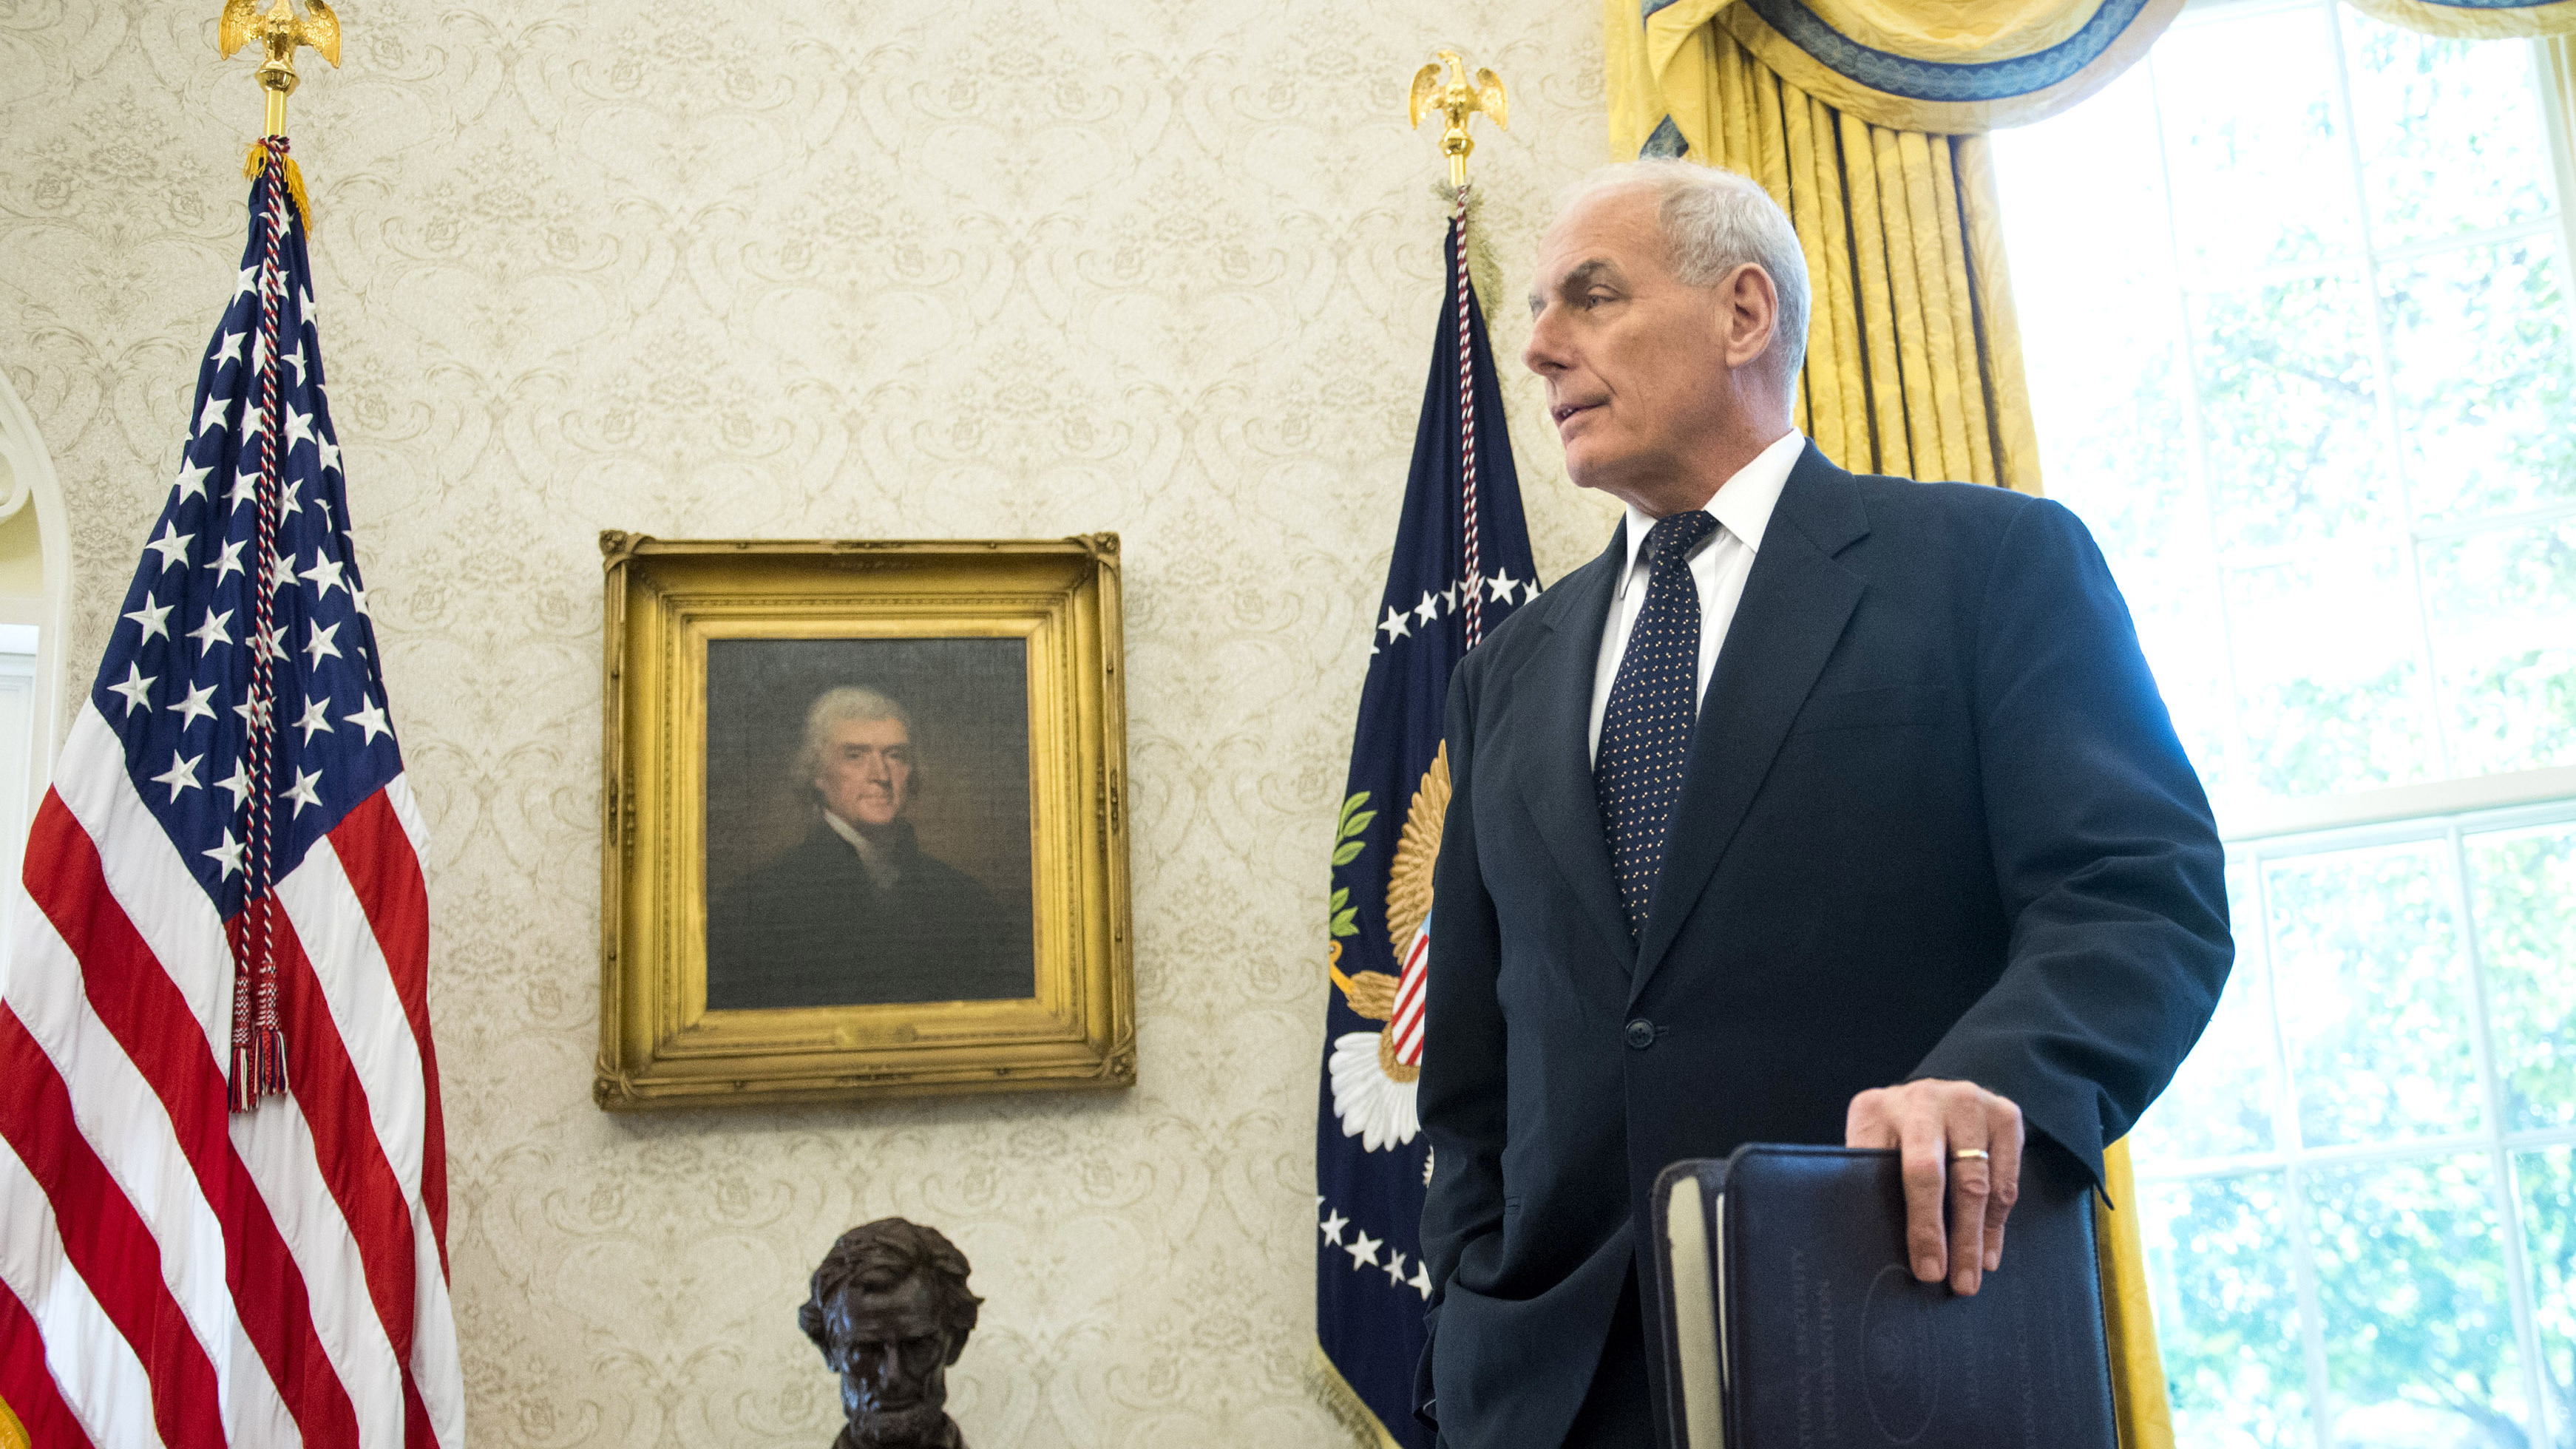 John Kelly Claims Civil War Caused By Lack Of Compromise. History Shows Otherwise